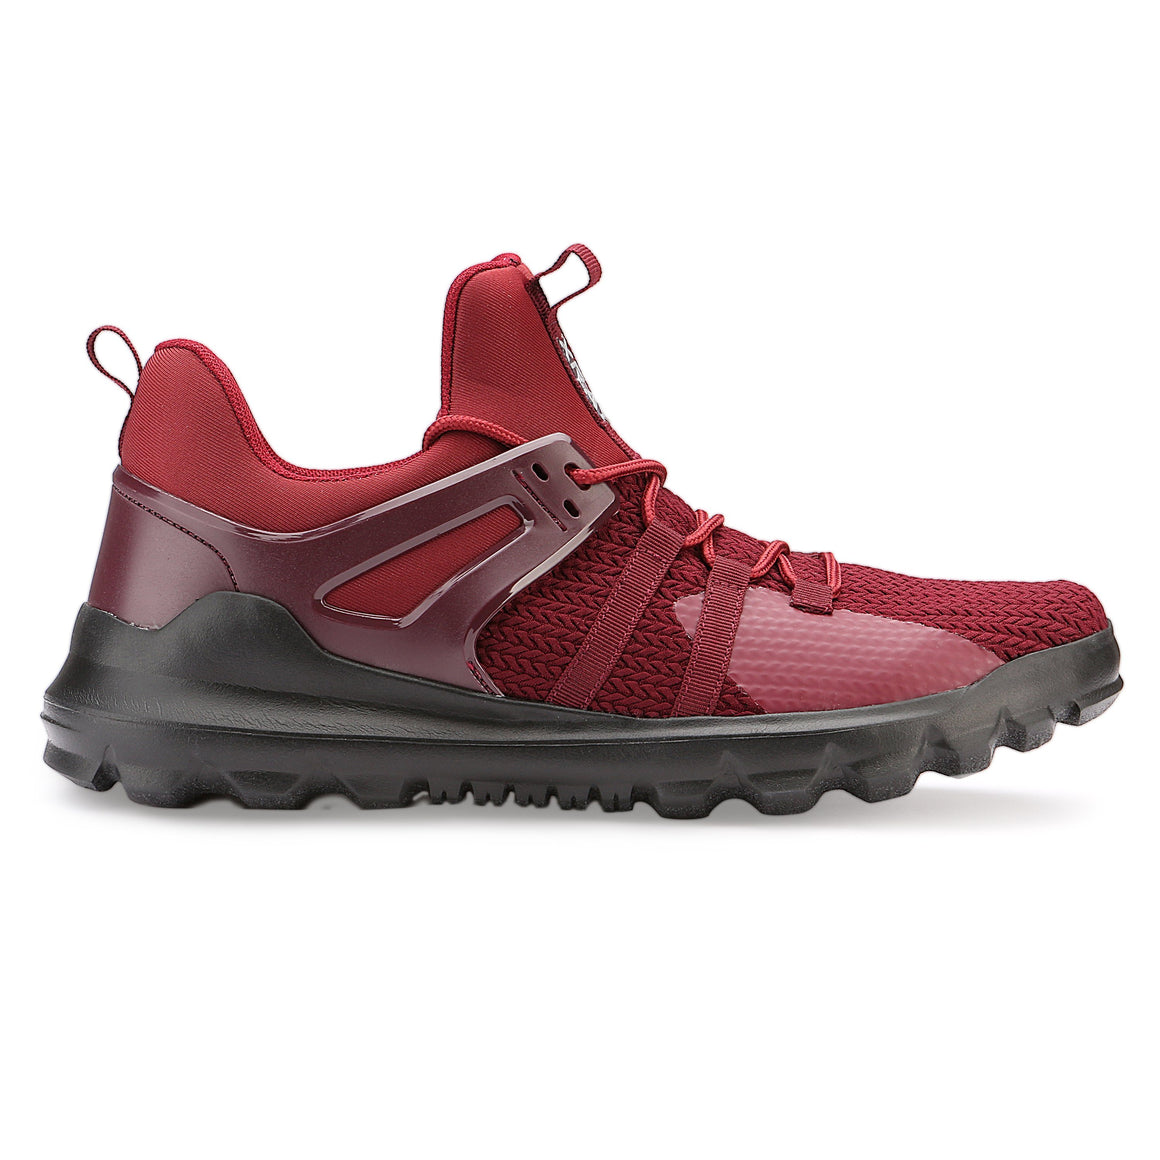 Xray Men's The Ampato Athletic Lowtop Sneakers OXBLOOD